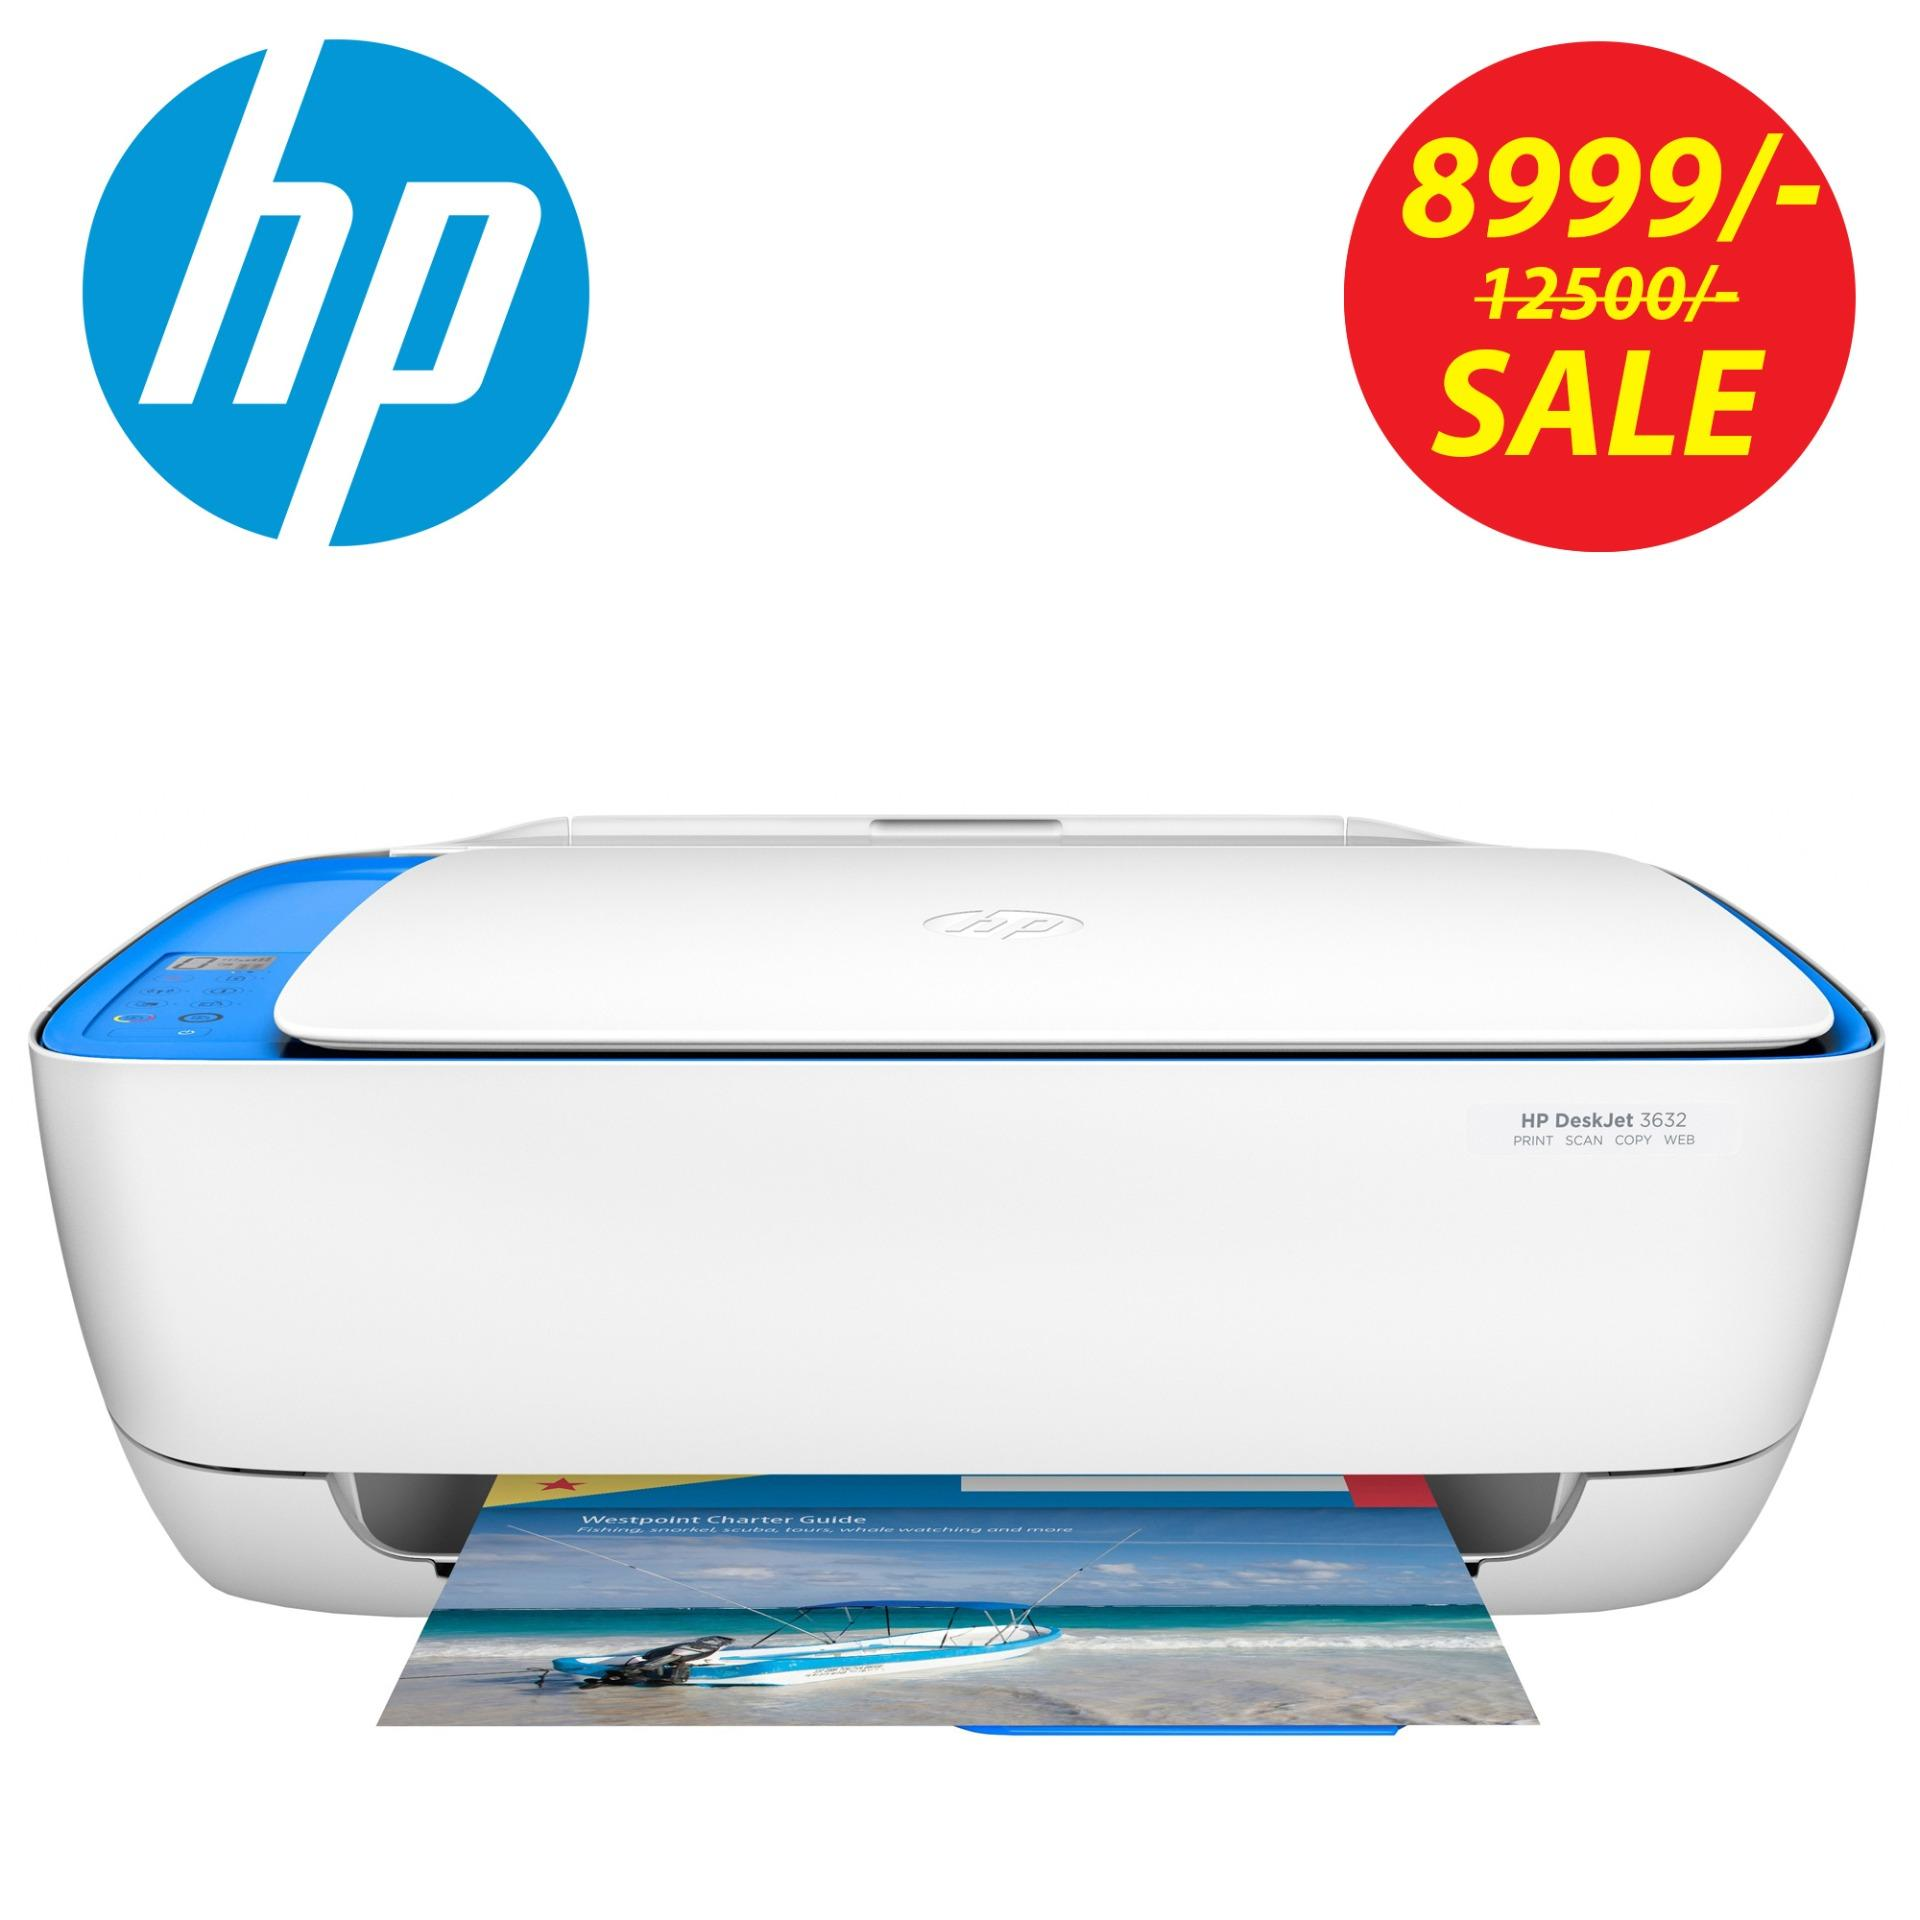 HP DeskJet 3632 All-in-One Printer (F5S47A)